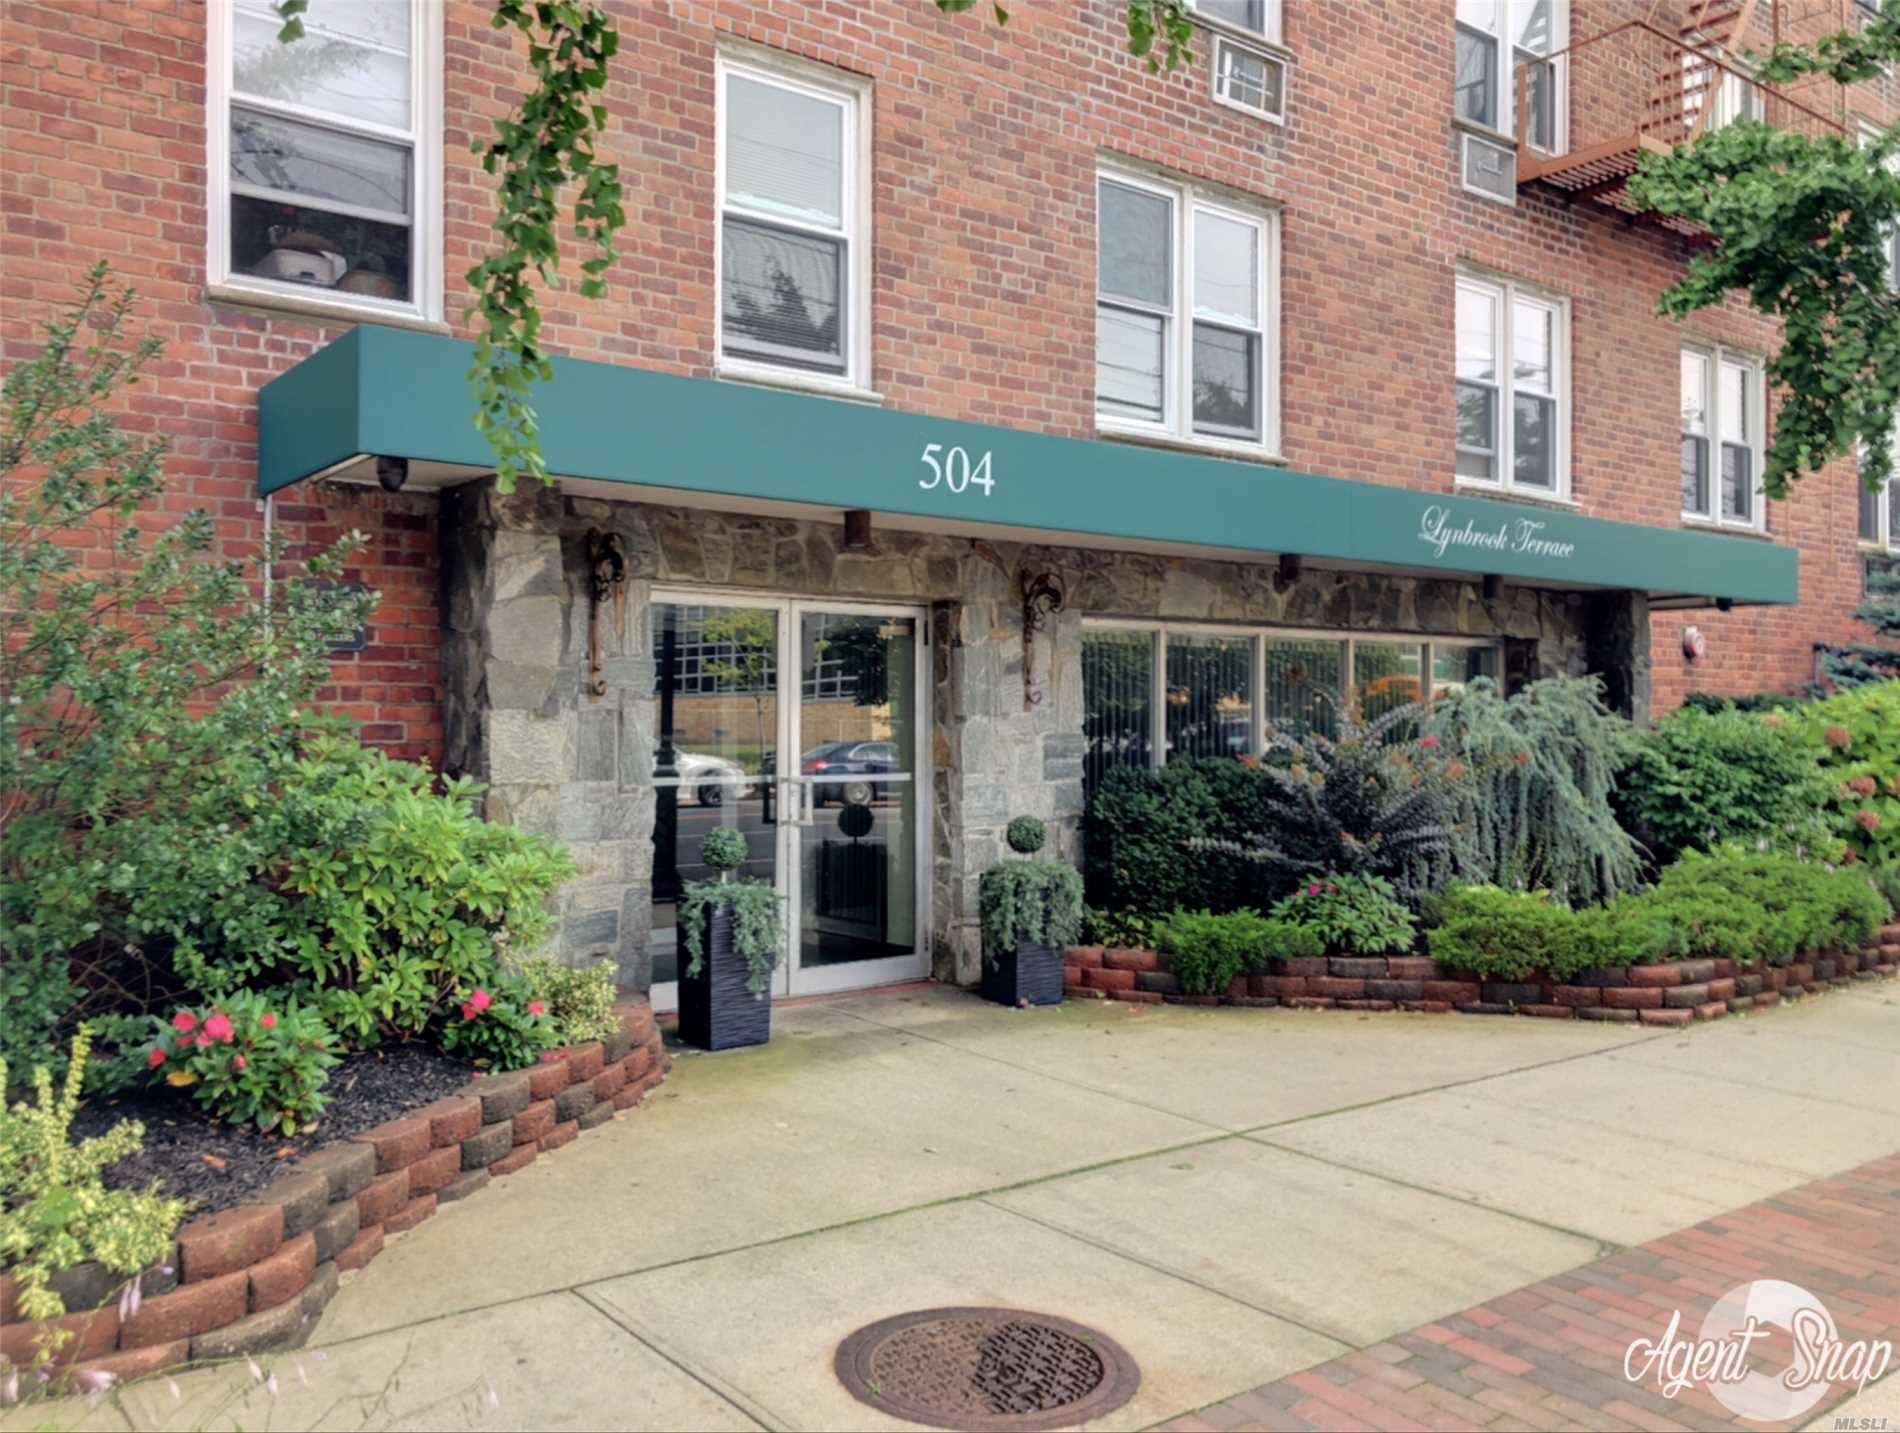 Property for sale at 504 Merrick Rd, Lynbrook,  NY 11563